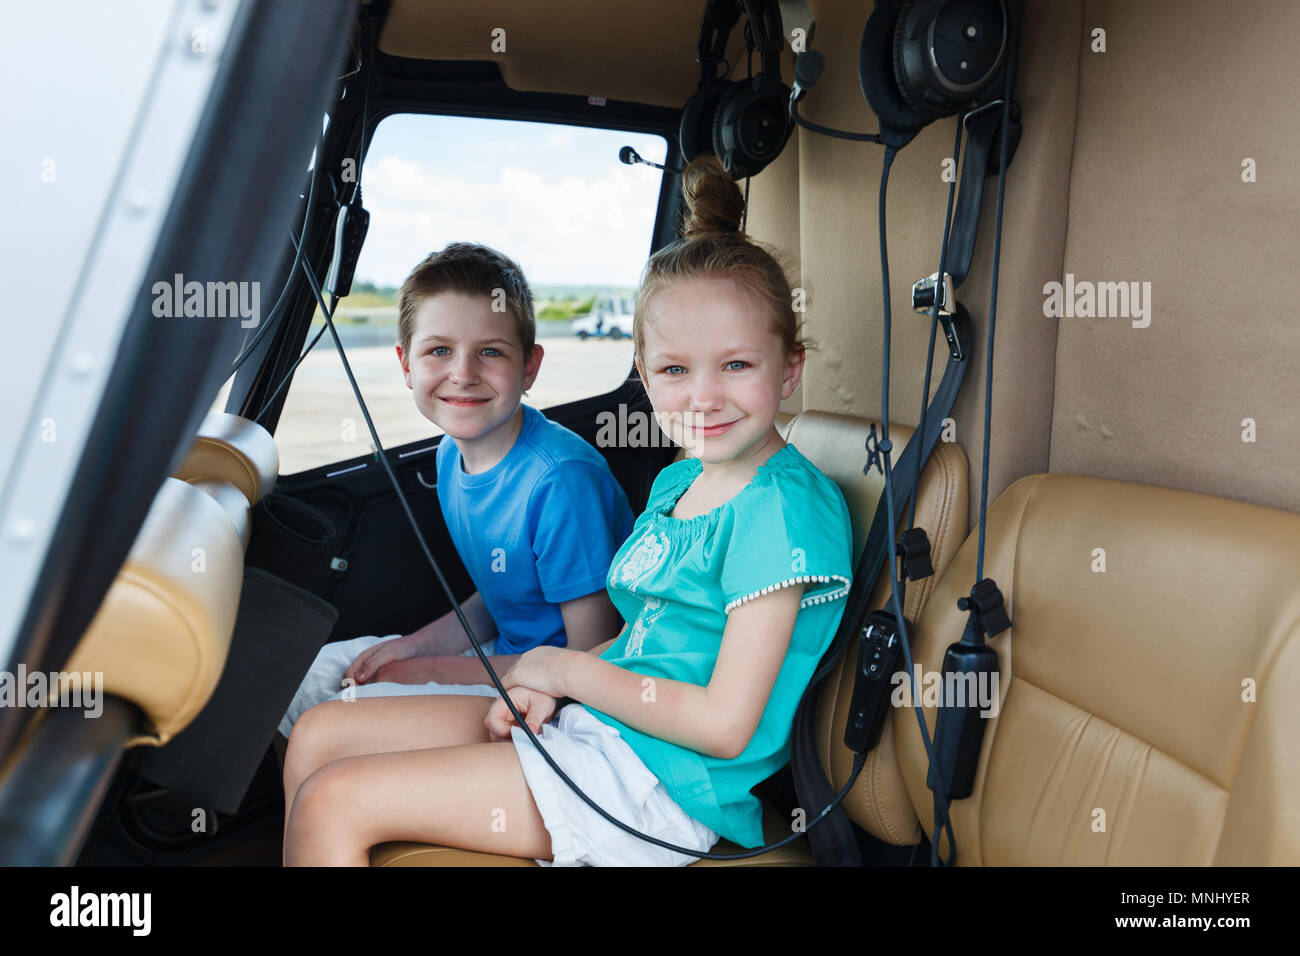 Kids at cabin of helicopter before scenic flight - Stock Image